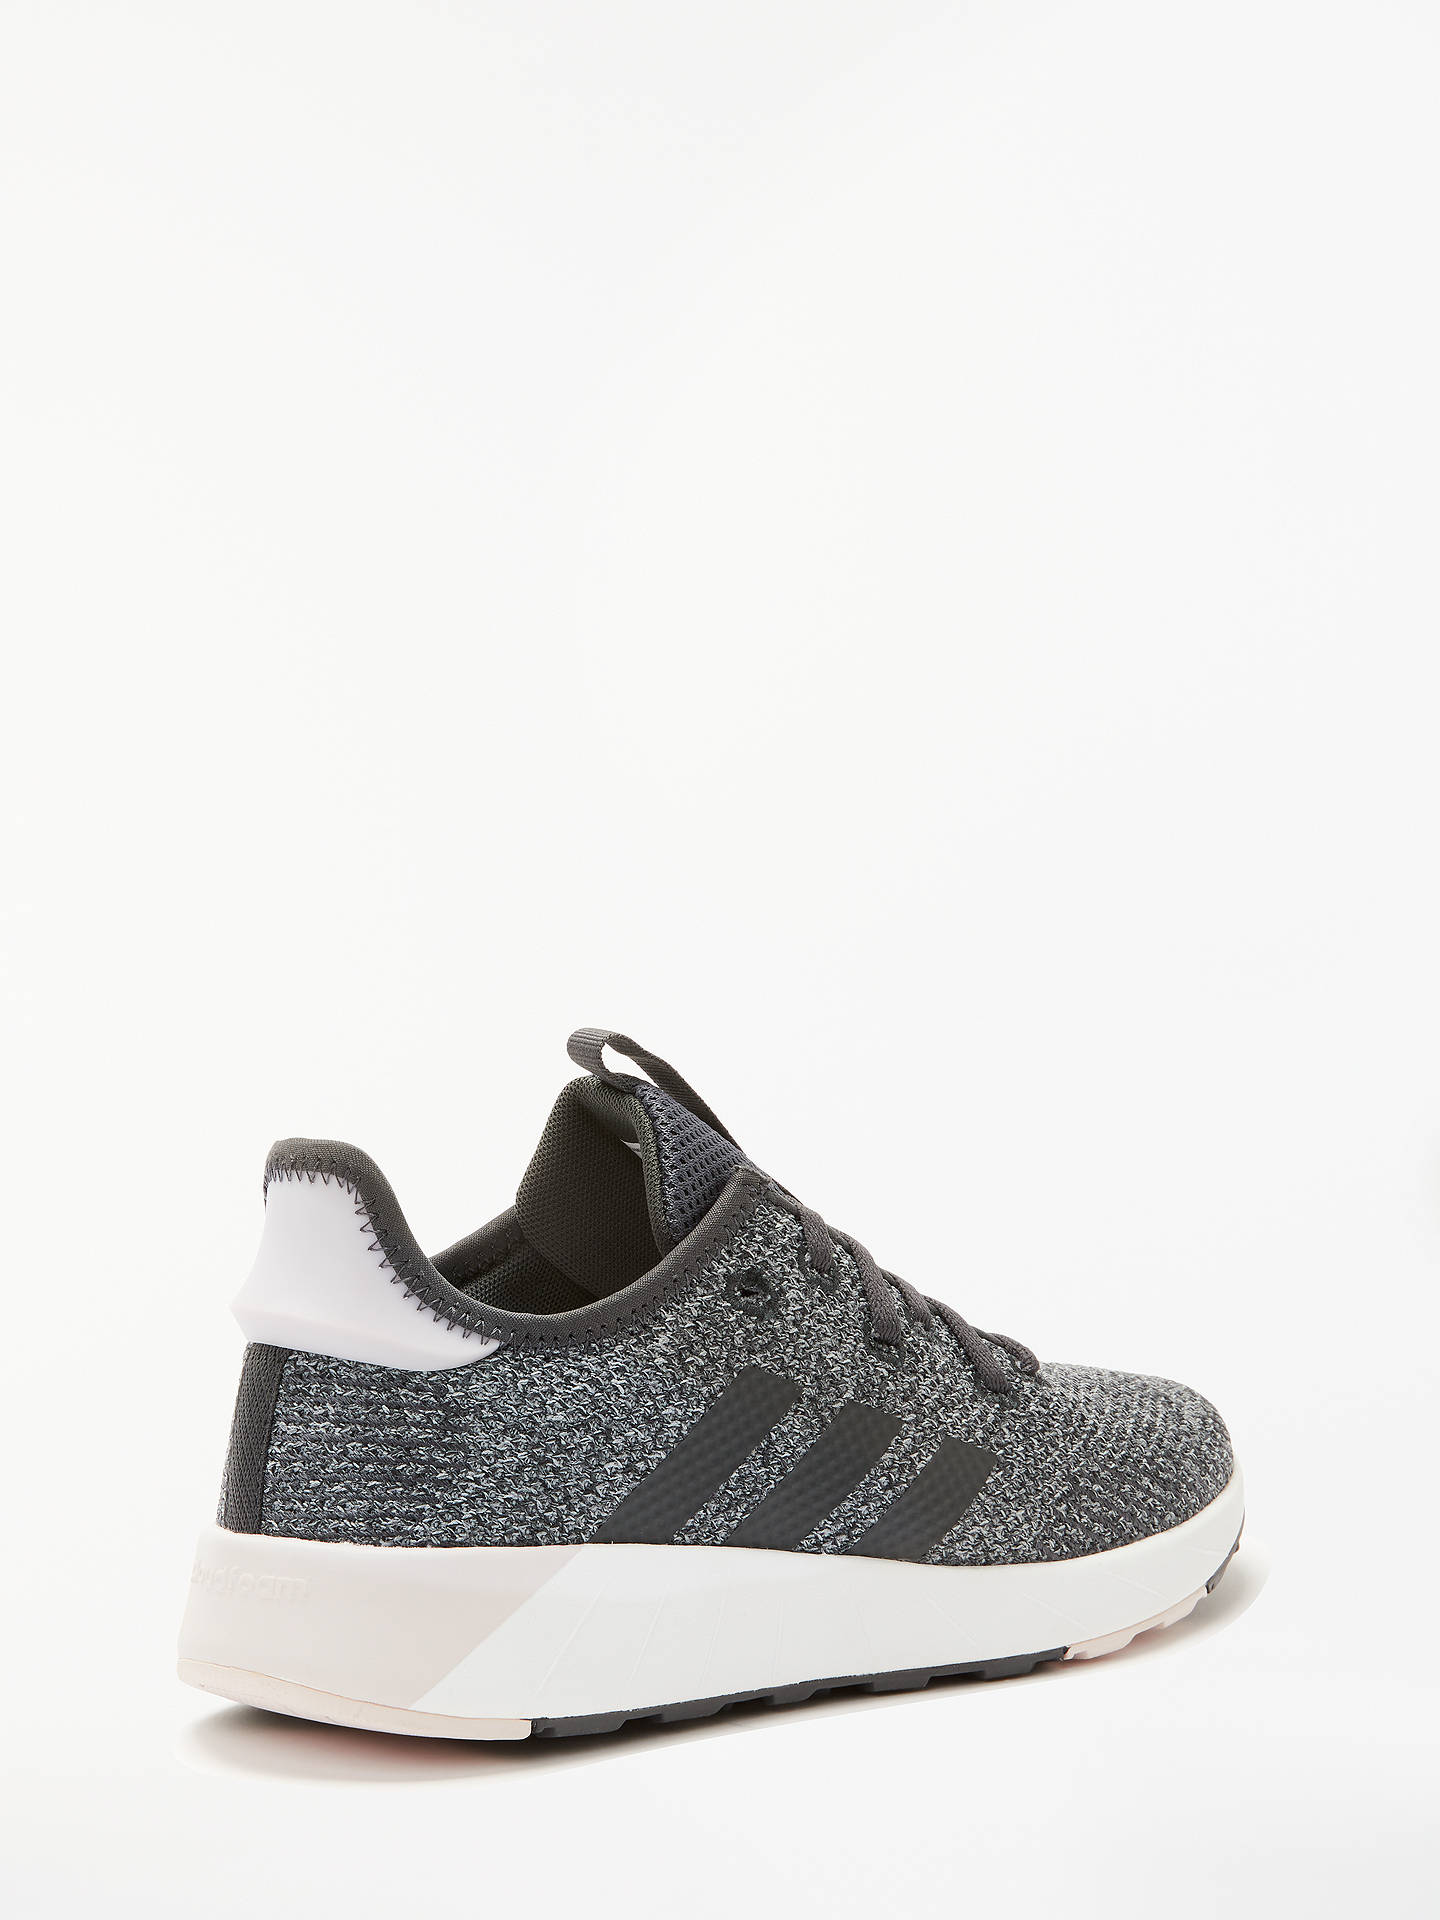 Buyadidas Questar X BYD Women's Trainers, Core Black/Carbon Grey, 4 Online at johnlewis.com